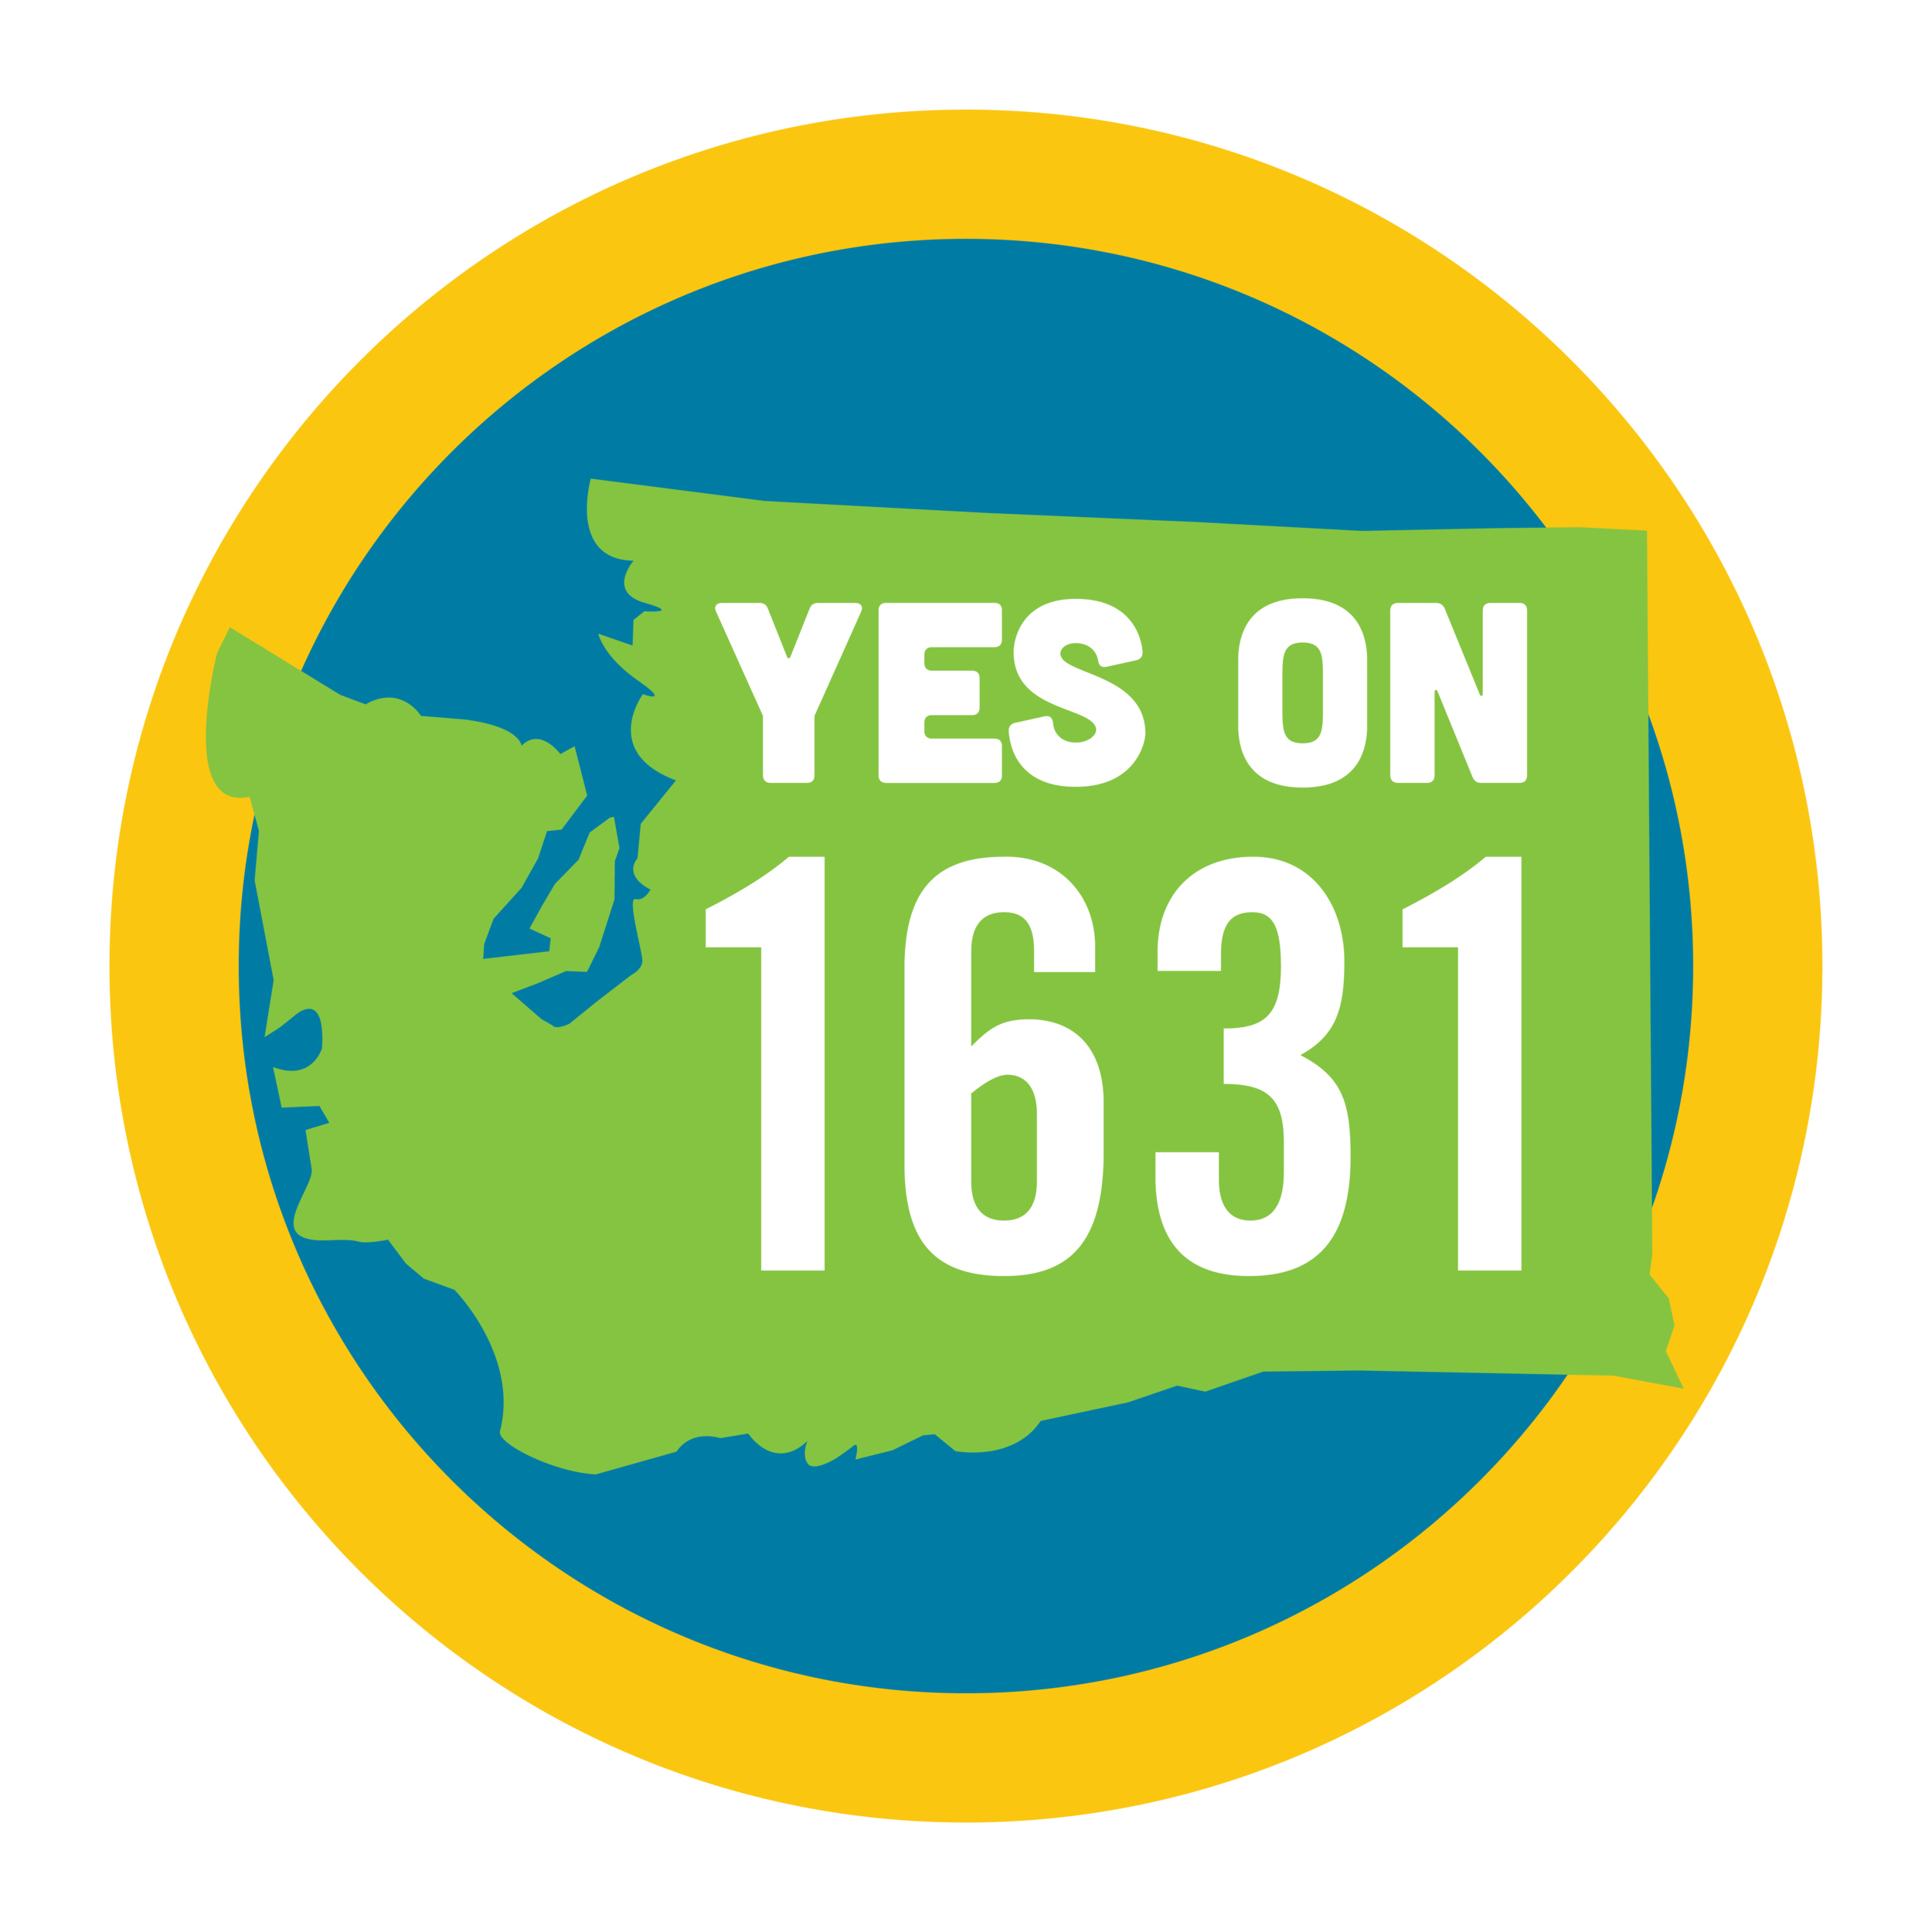 Yes on 1631 logo-default.png